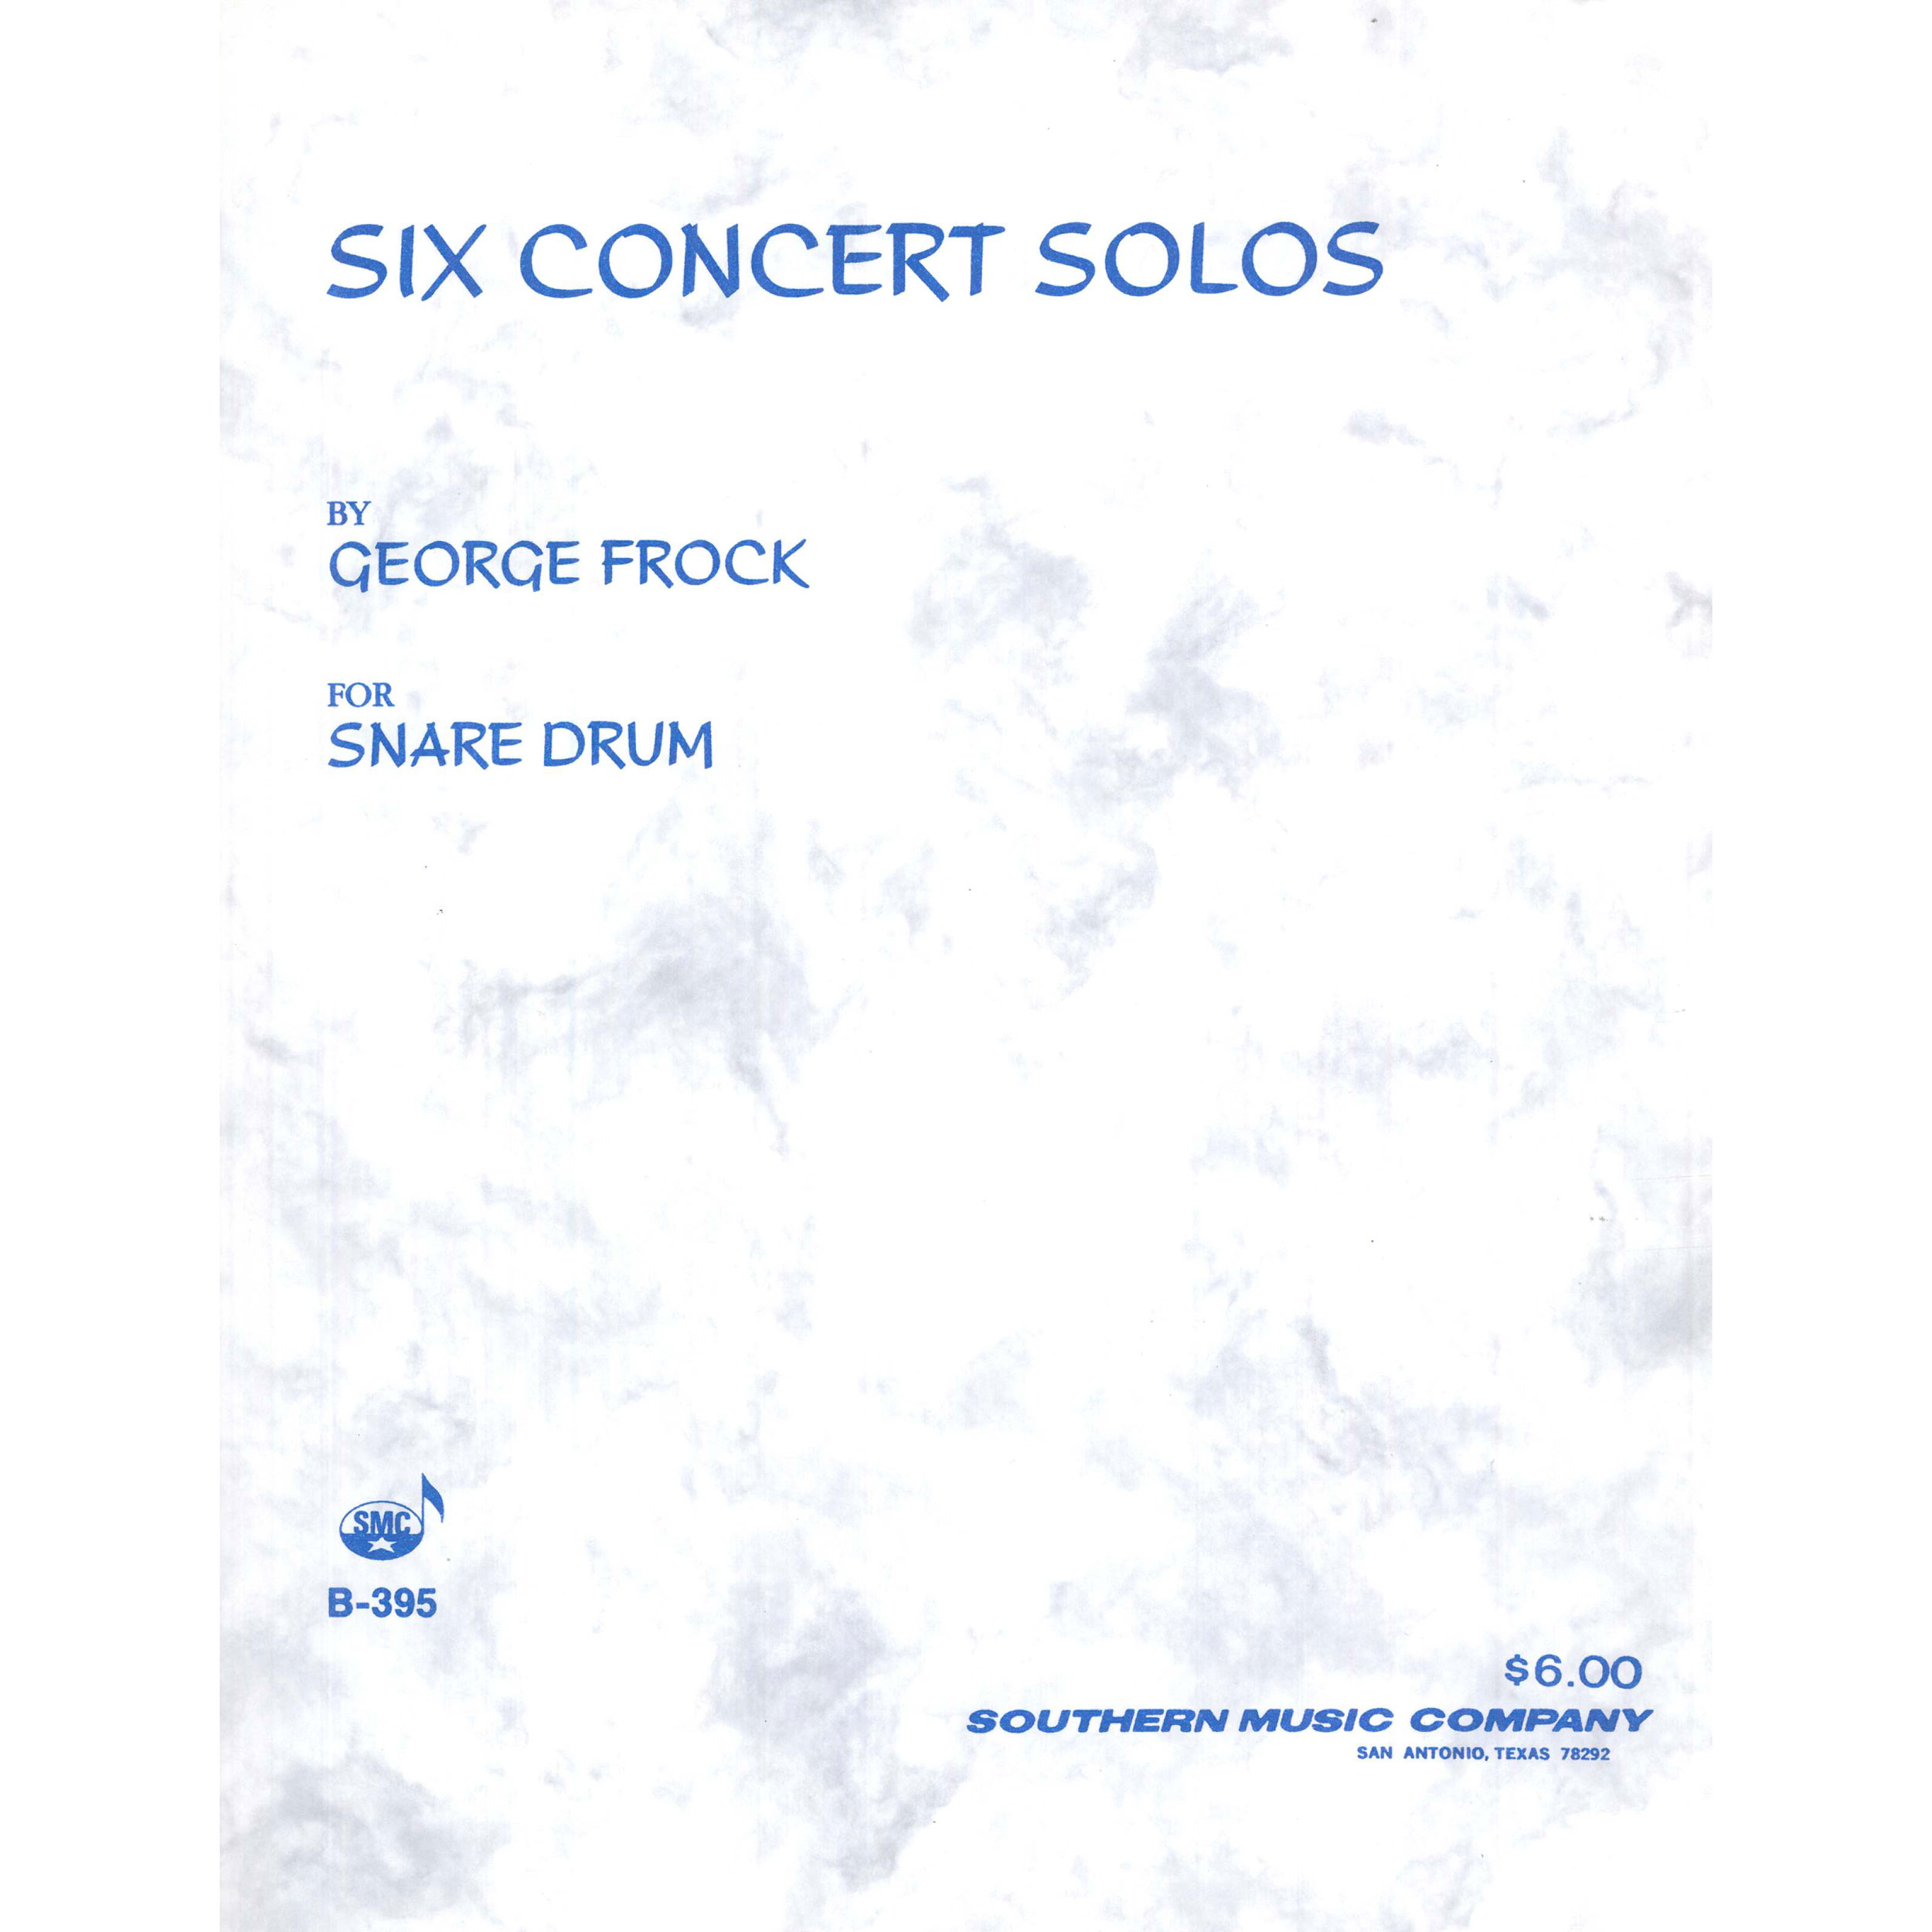 Six Concert Solos by George Frock